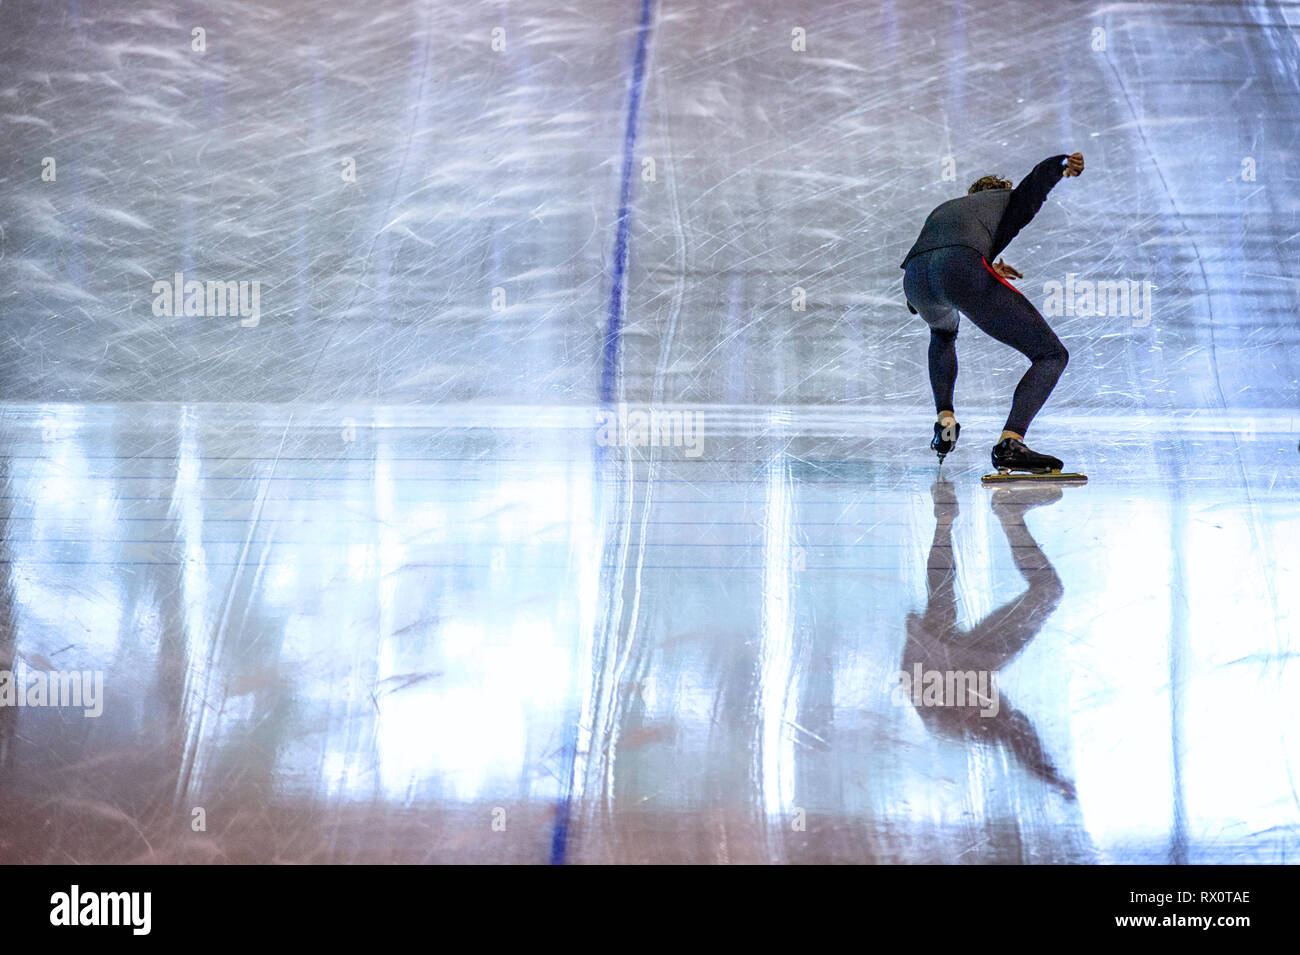 Athletic speed skater in training, practicing at the start line of a speed skating oval Stock Photo